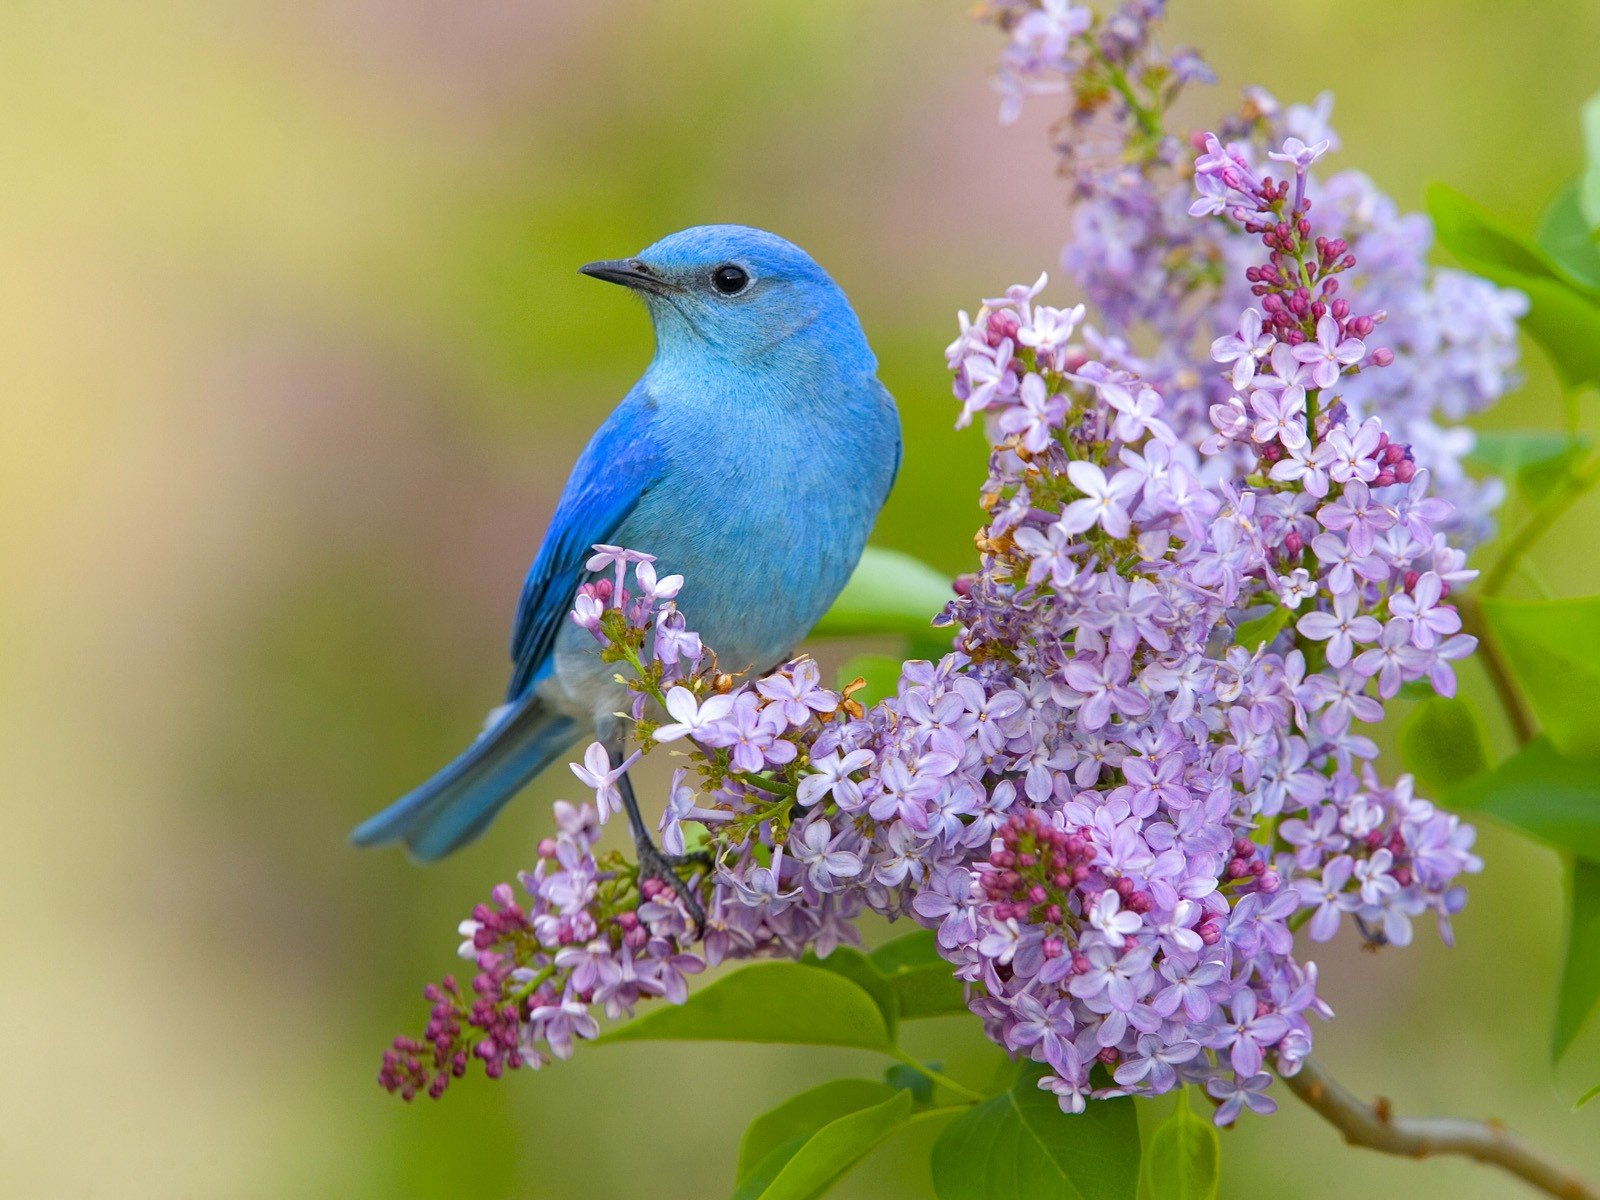 Flowers birds lilac bluebirds wallpaper 1600x1200 328072 1600x1200